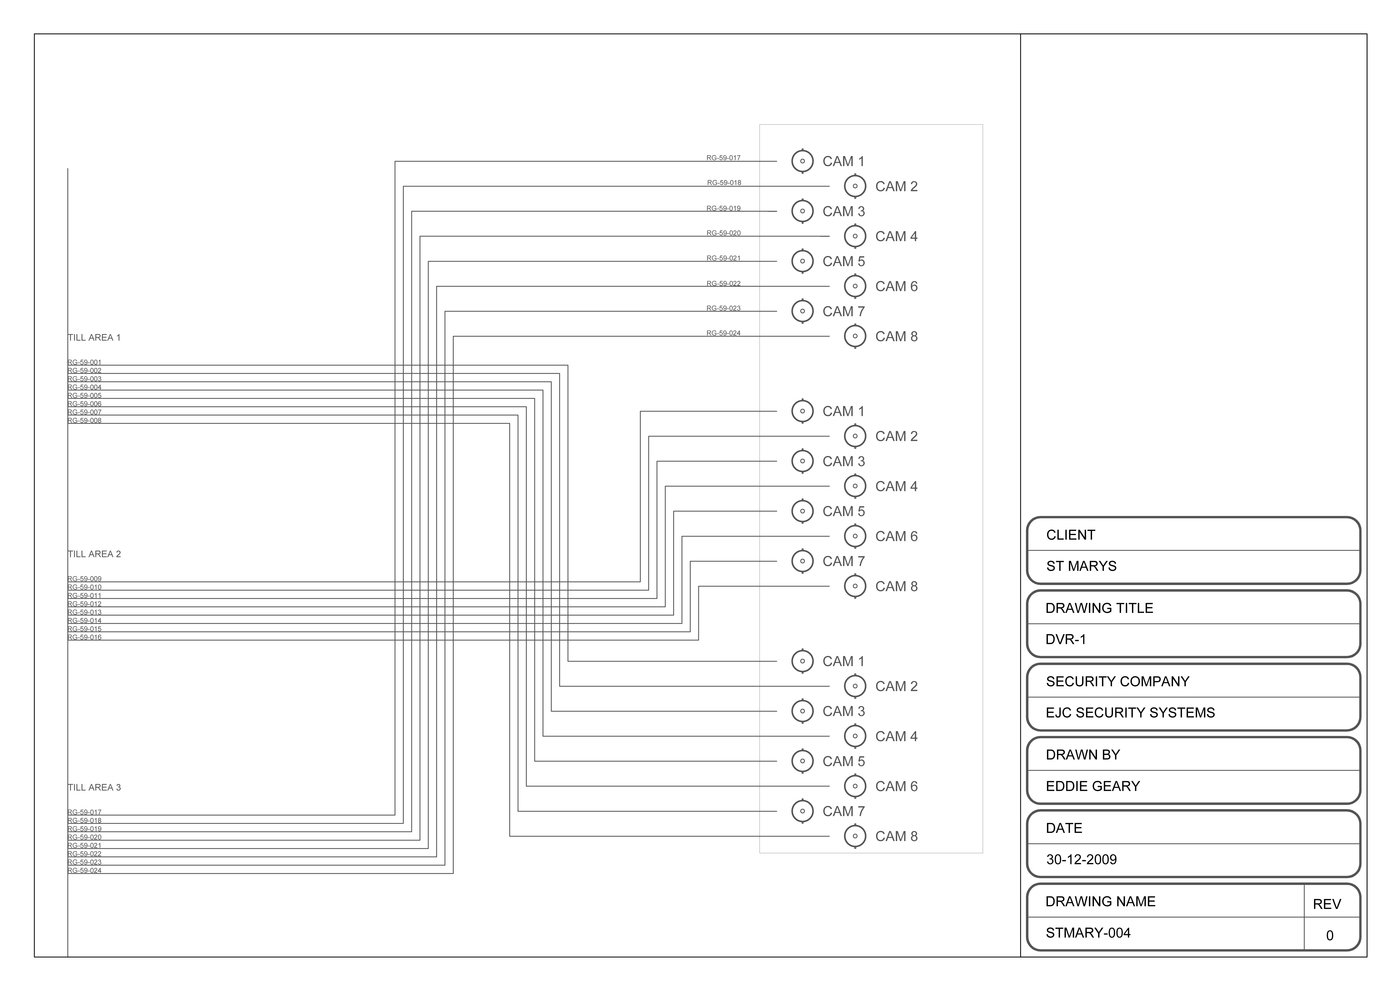 2d Autocad By Eddie Geary At Dvr Wiring Diagrams Diagrama